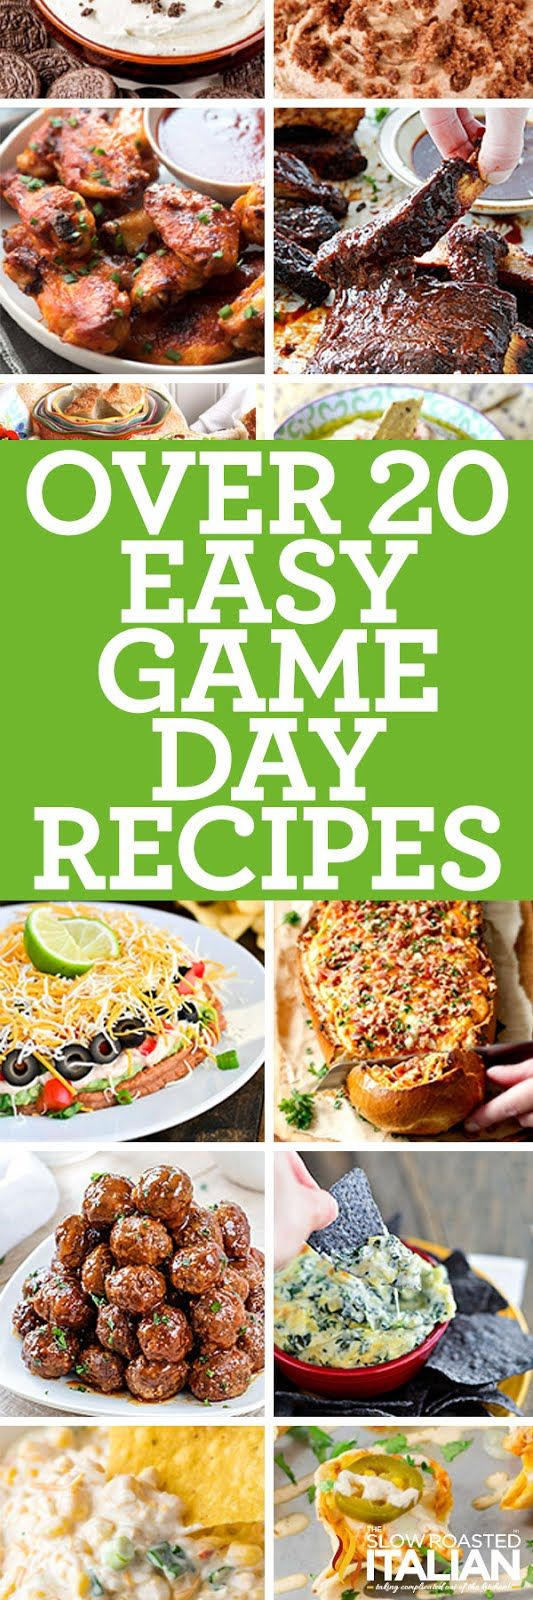 20+ Easy Game Day Recipes - Nothing makes game day better than simple amazing recipes, well that and a great game.